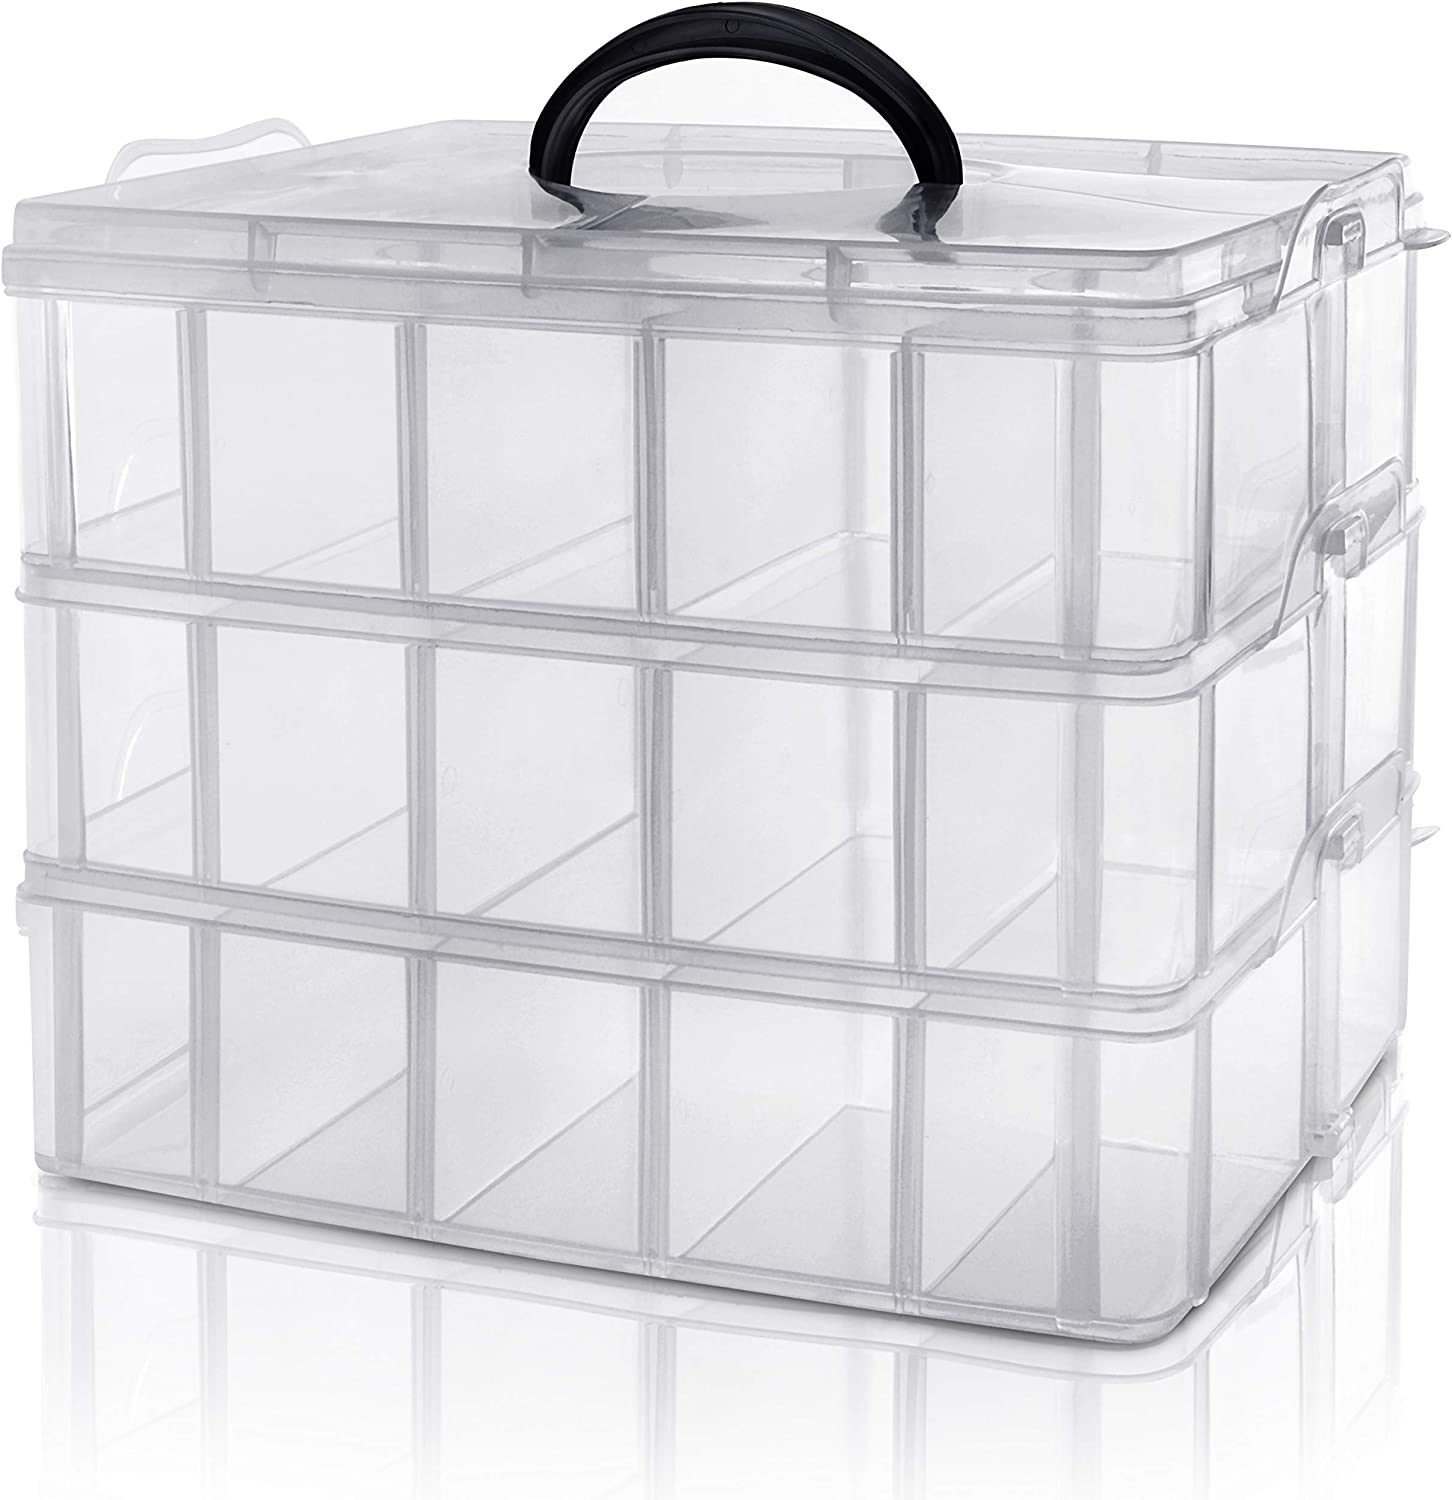 Kurtzy 3 Tier Clear Transparent Plastic Stackable Storage Box - Adjustable Compartment Slots - Maximum 30 Compartments - Container for Storing & Organising Toys, Jewellery, Beads, Arts & Crafts, Tools